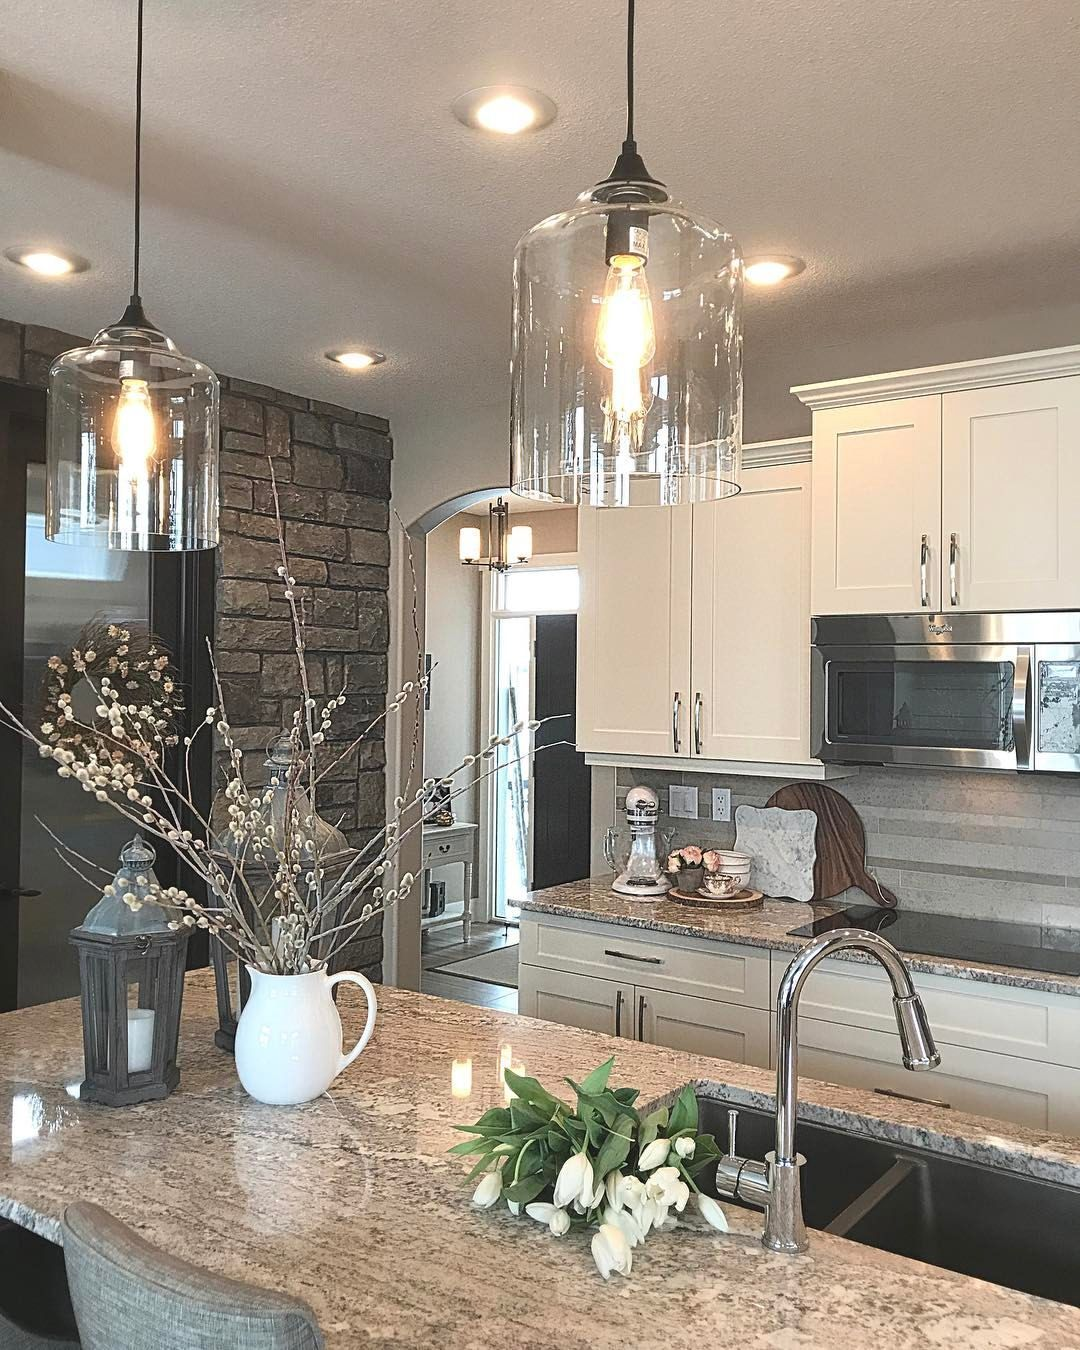 20 Unique Kitchen Lighting Ideas For Your Wonderful Kitchen Snapshot Magazine Farmhouse Kitchen Design Farmhouse Kitchen Lighting Modern Kitchen Interiors